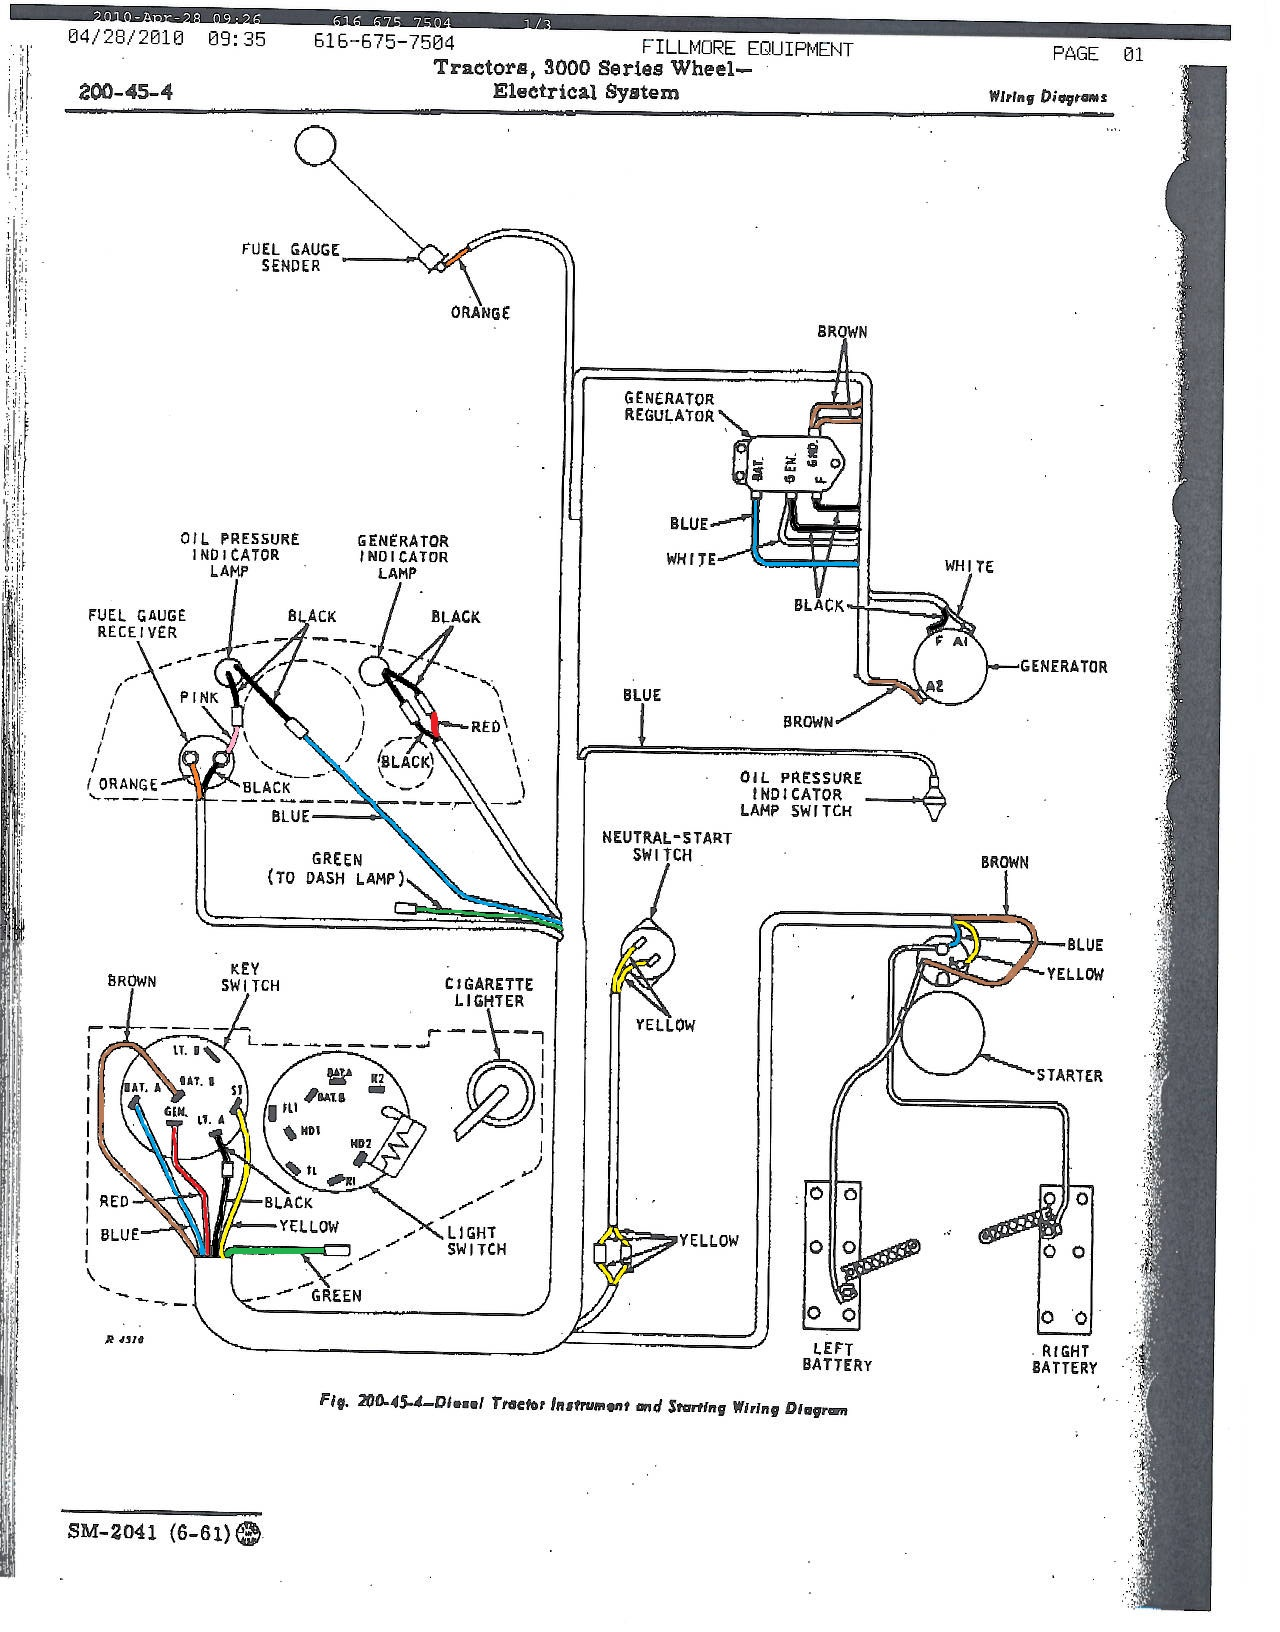 [WLLP_2054]   Wiring Diagram For John Deere 3010 Diagram Base Website Deere 3010 -  VENNDIAGRAMMATH.ATHLEMANIAC.FR | John Deere 1010 Wiring Schematic |  | Diagram Base Website Full Edition